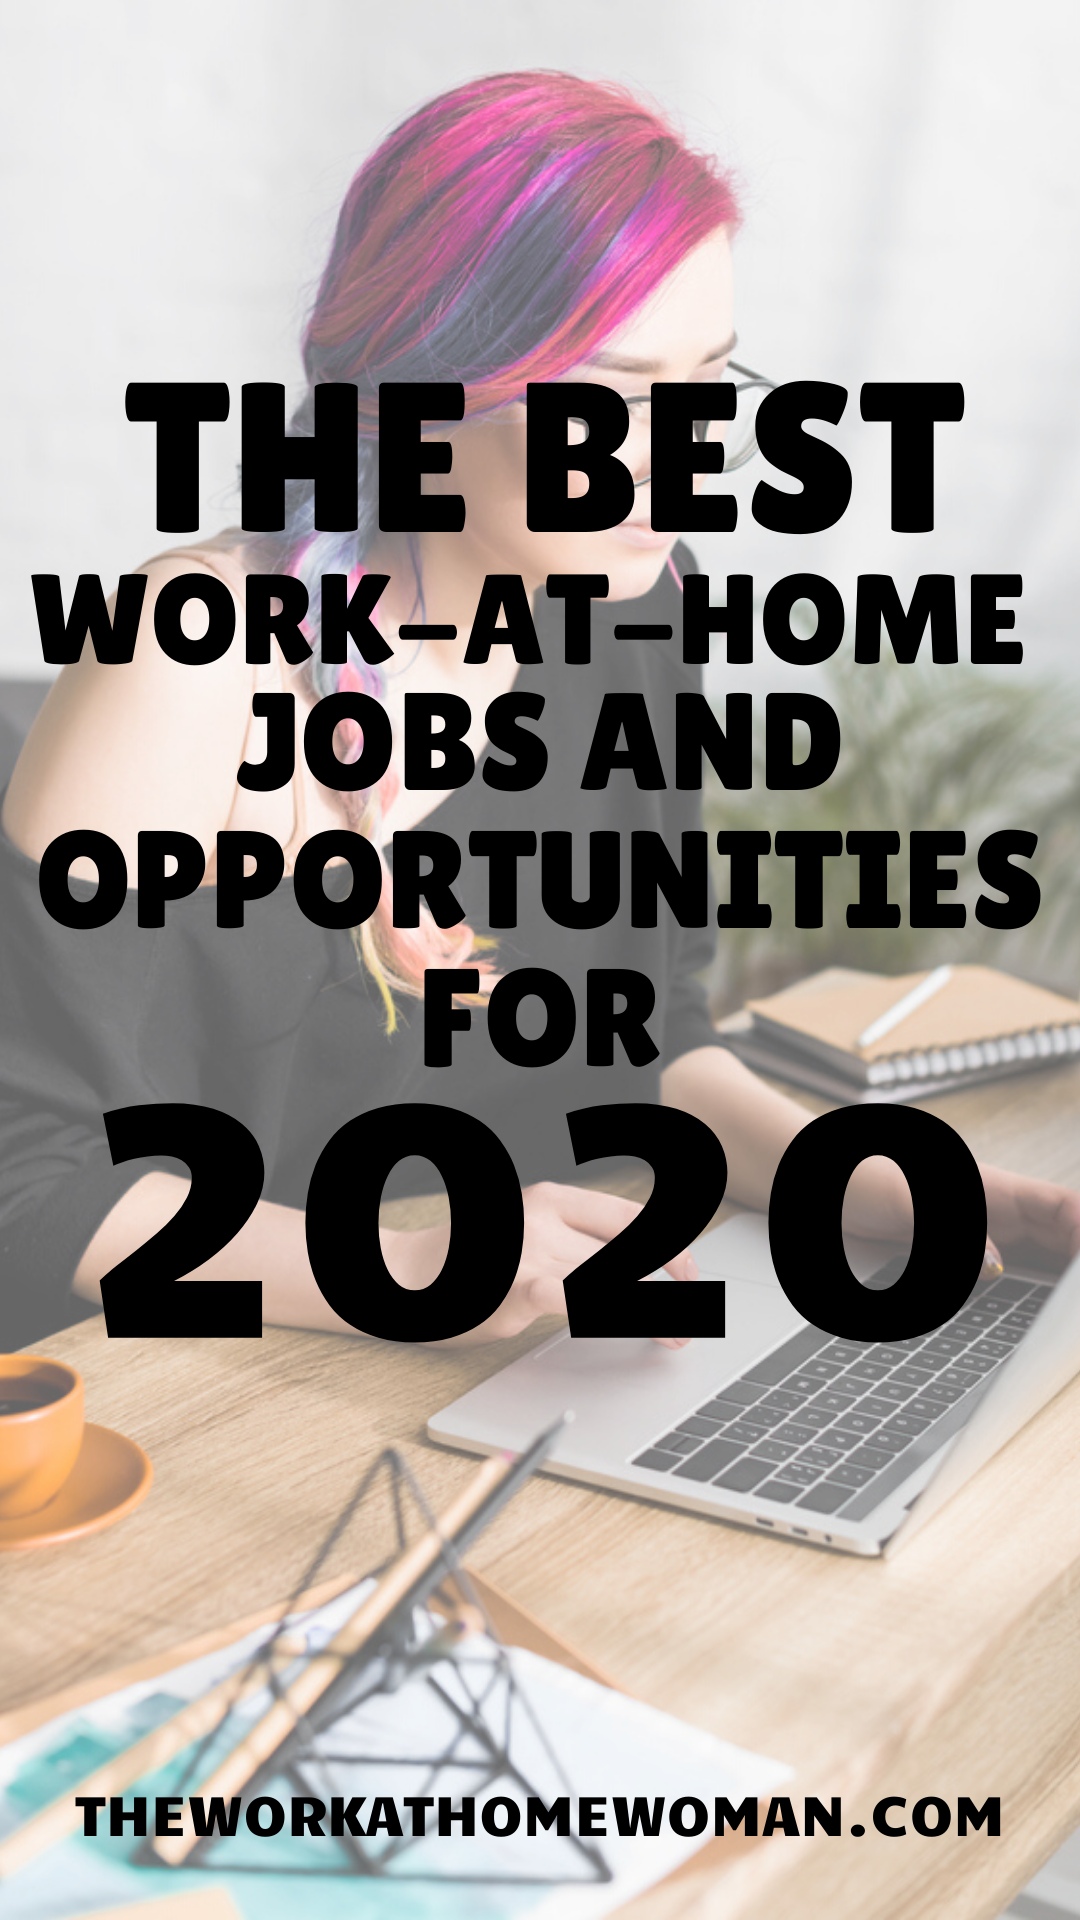 The Best Work From Home Jobs For 2020 In 2020 Work From Home Jobs Legitimate Work From Home Work From Home Careers